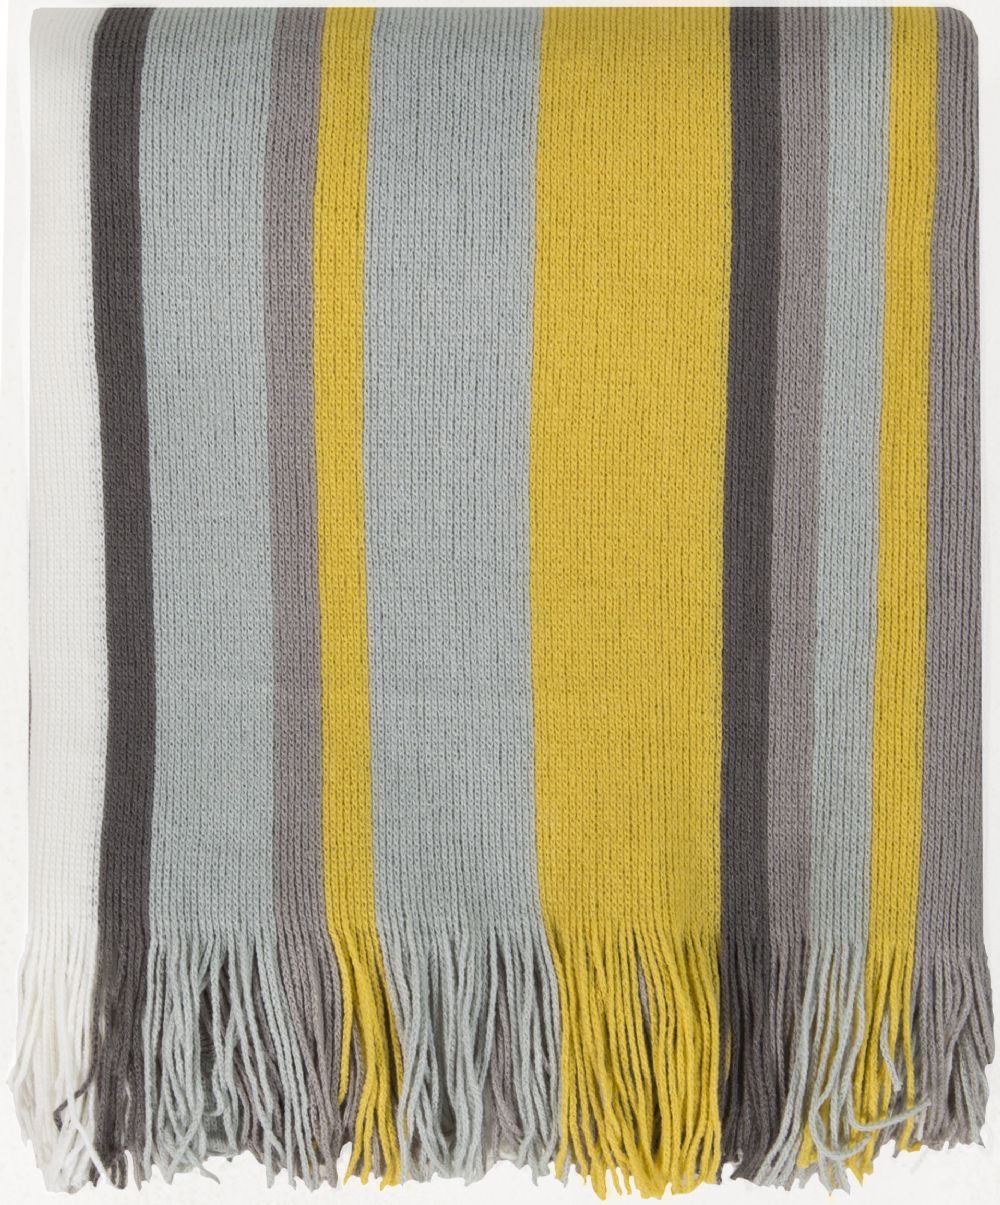 surya topanga solid/striped throw collection